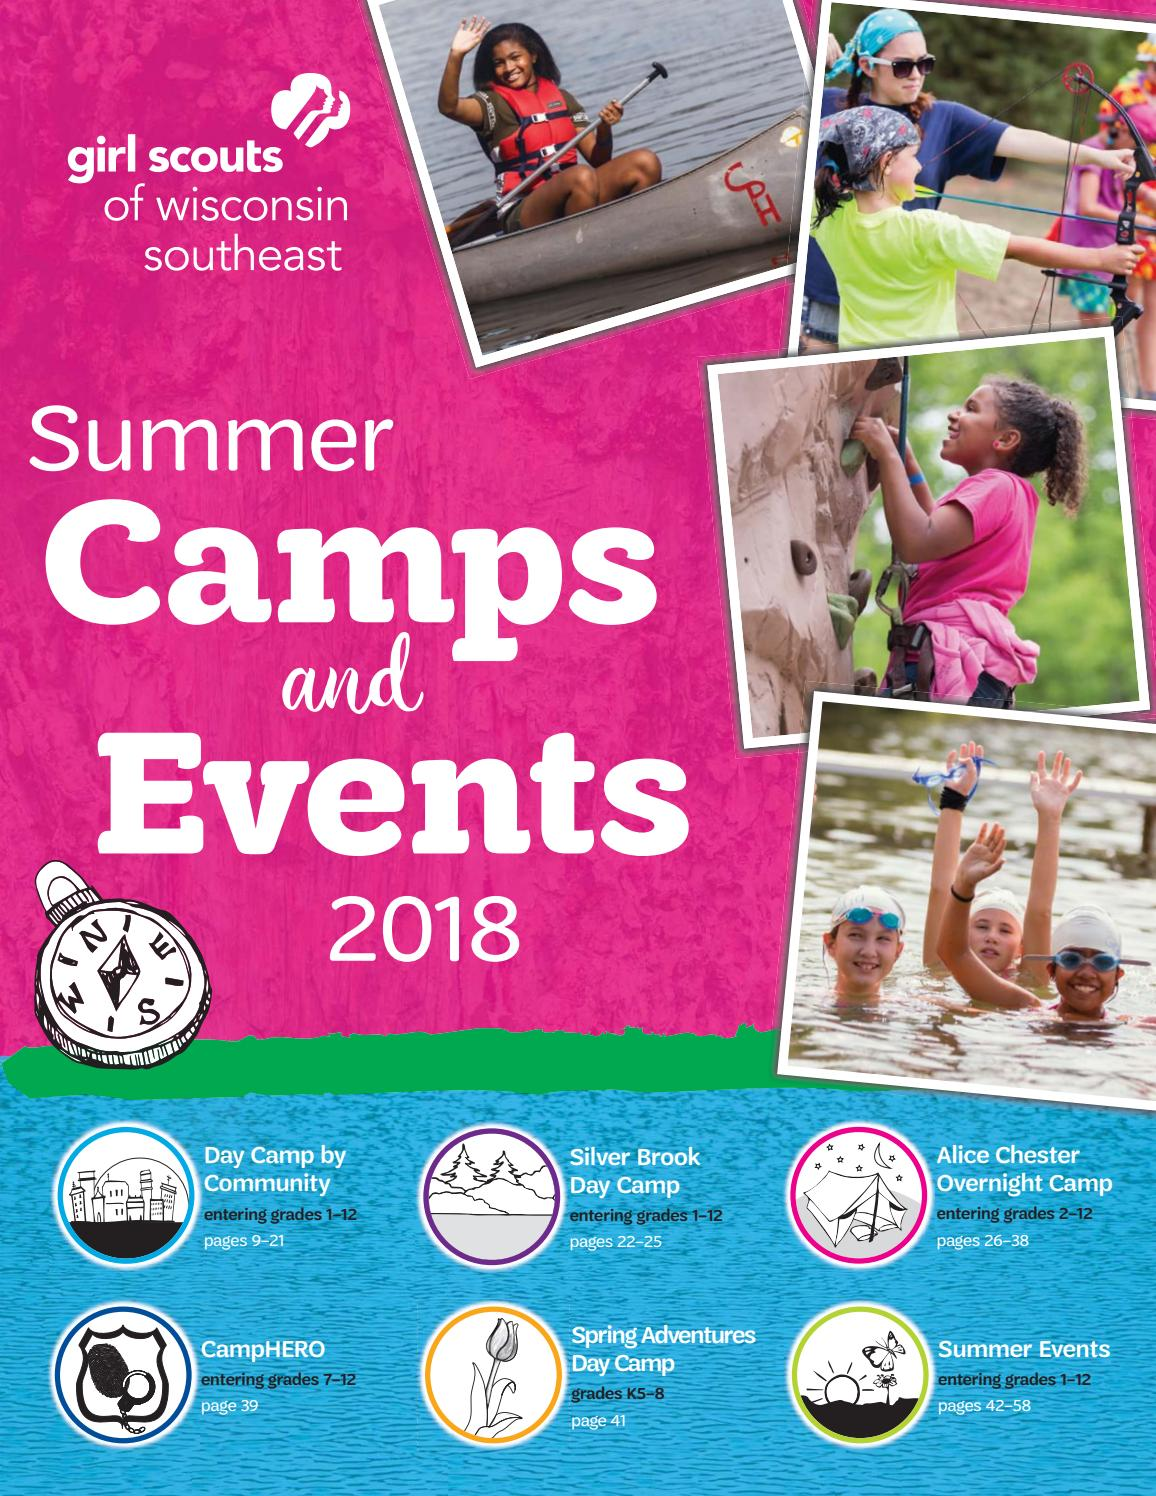 2018 Summer Camp and Events Book by Girl Scouts of Wisconsin